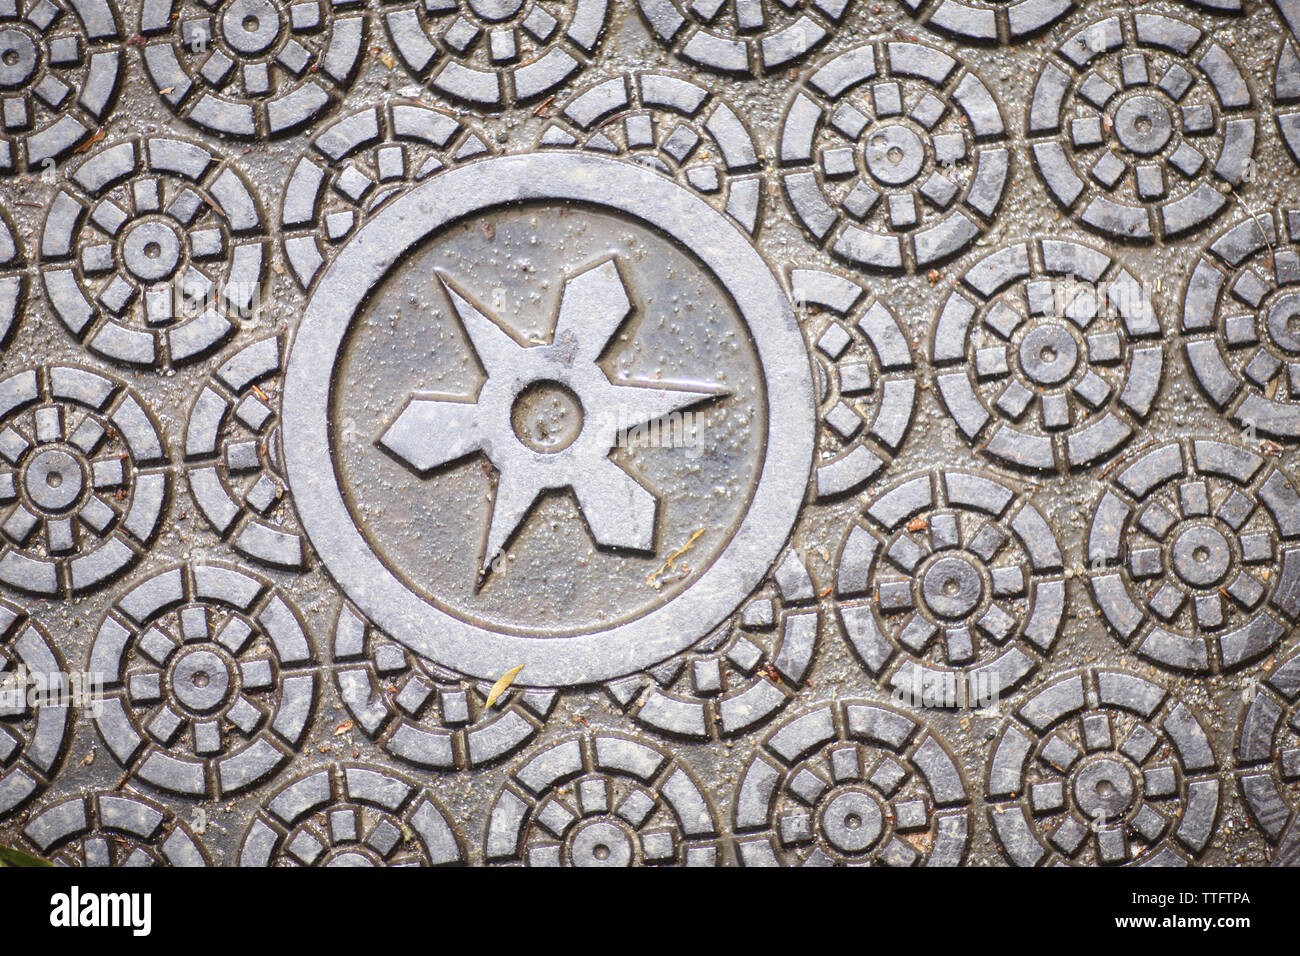 Metal Plate Art High Resolution Stock Photography And Images Alamy